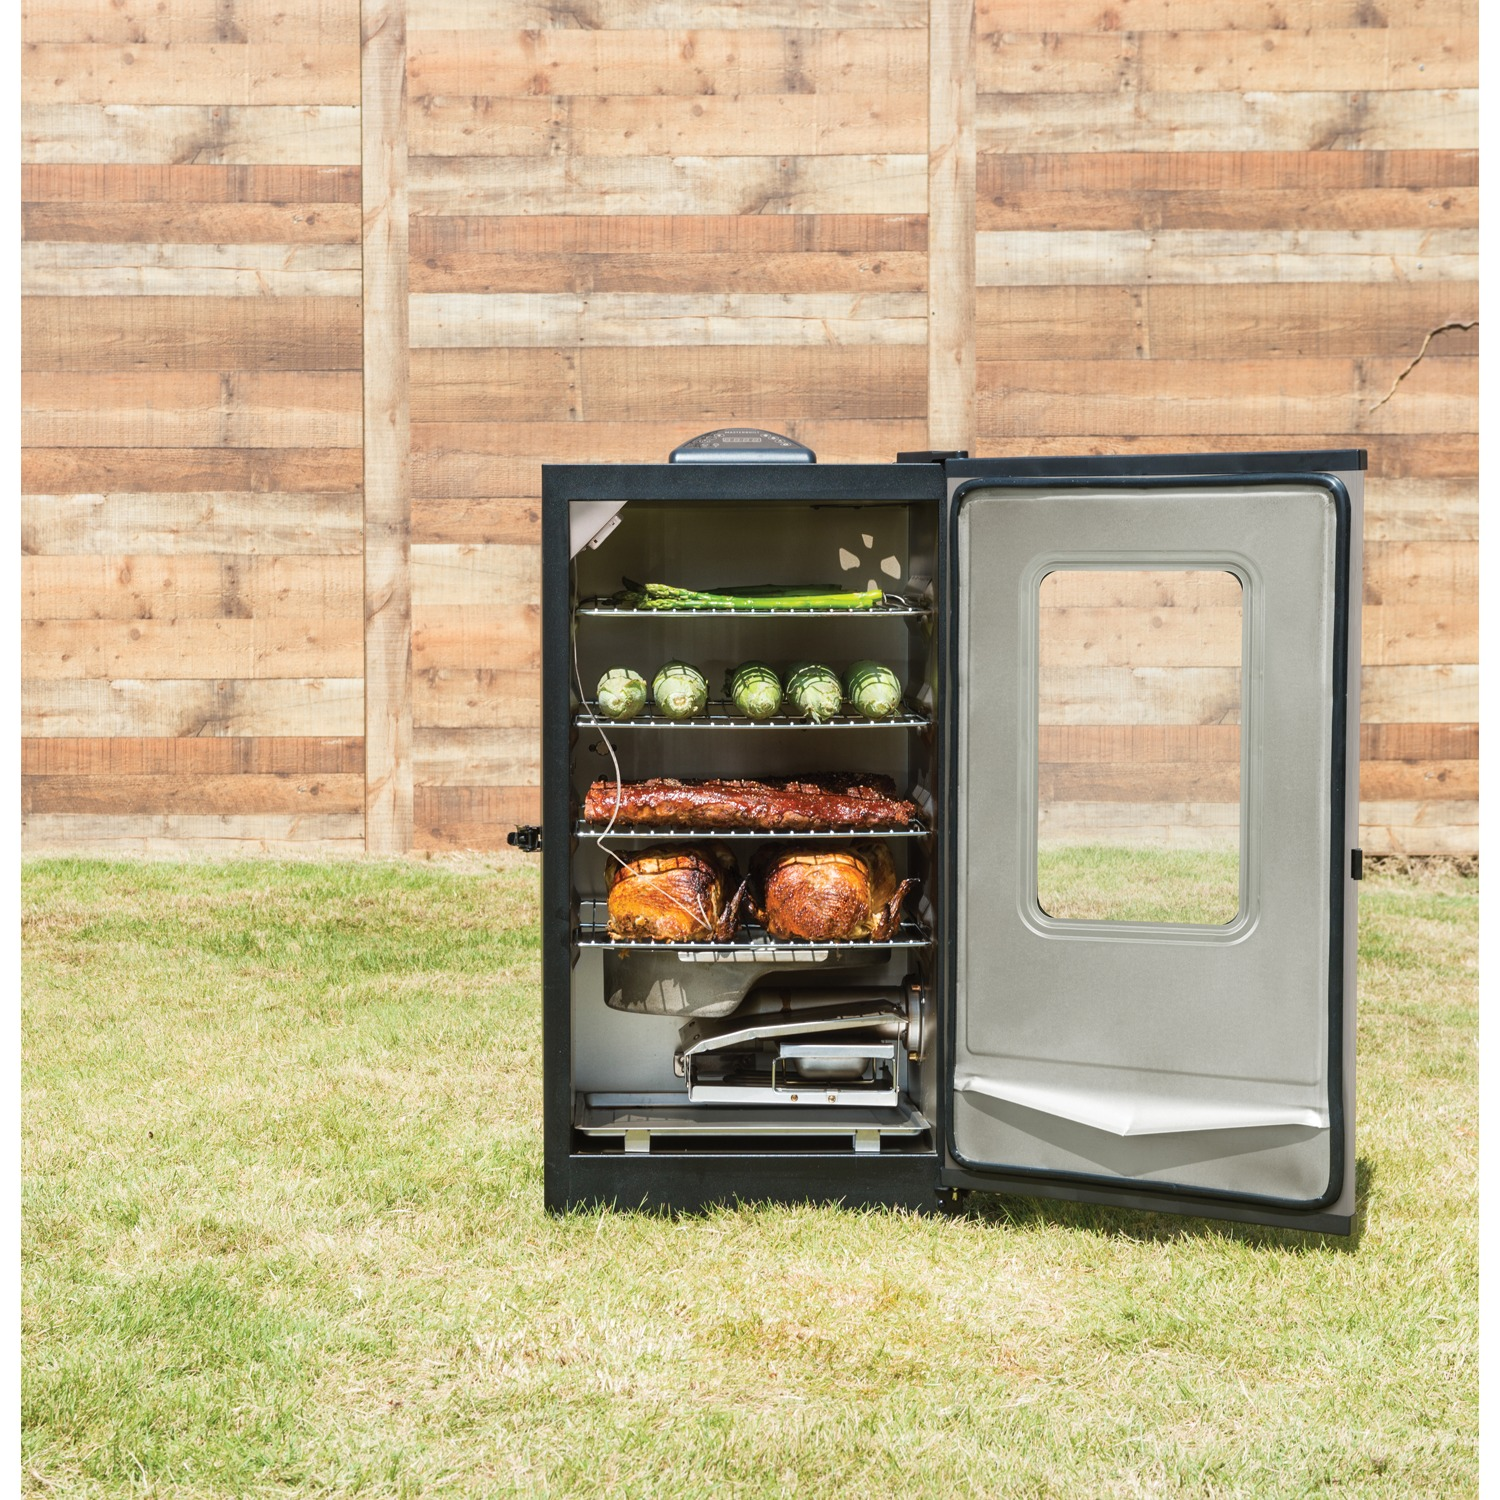 Masterbuilt Digital Electric Smoker 130S - 30""